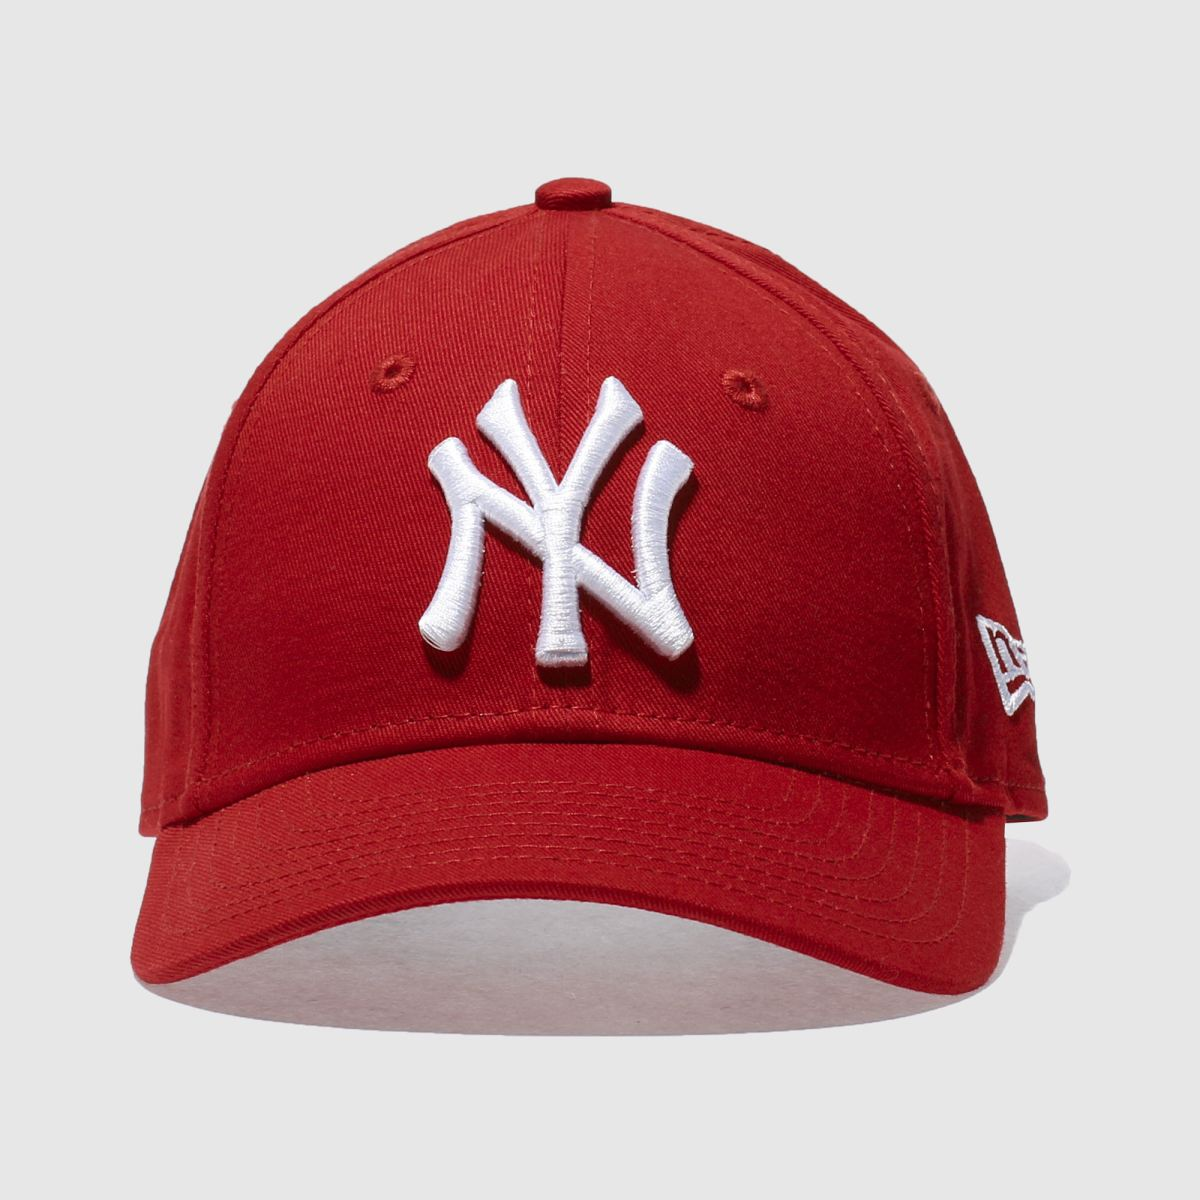 New Era New Era Red Kids Ny Yankees 9forty